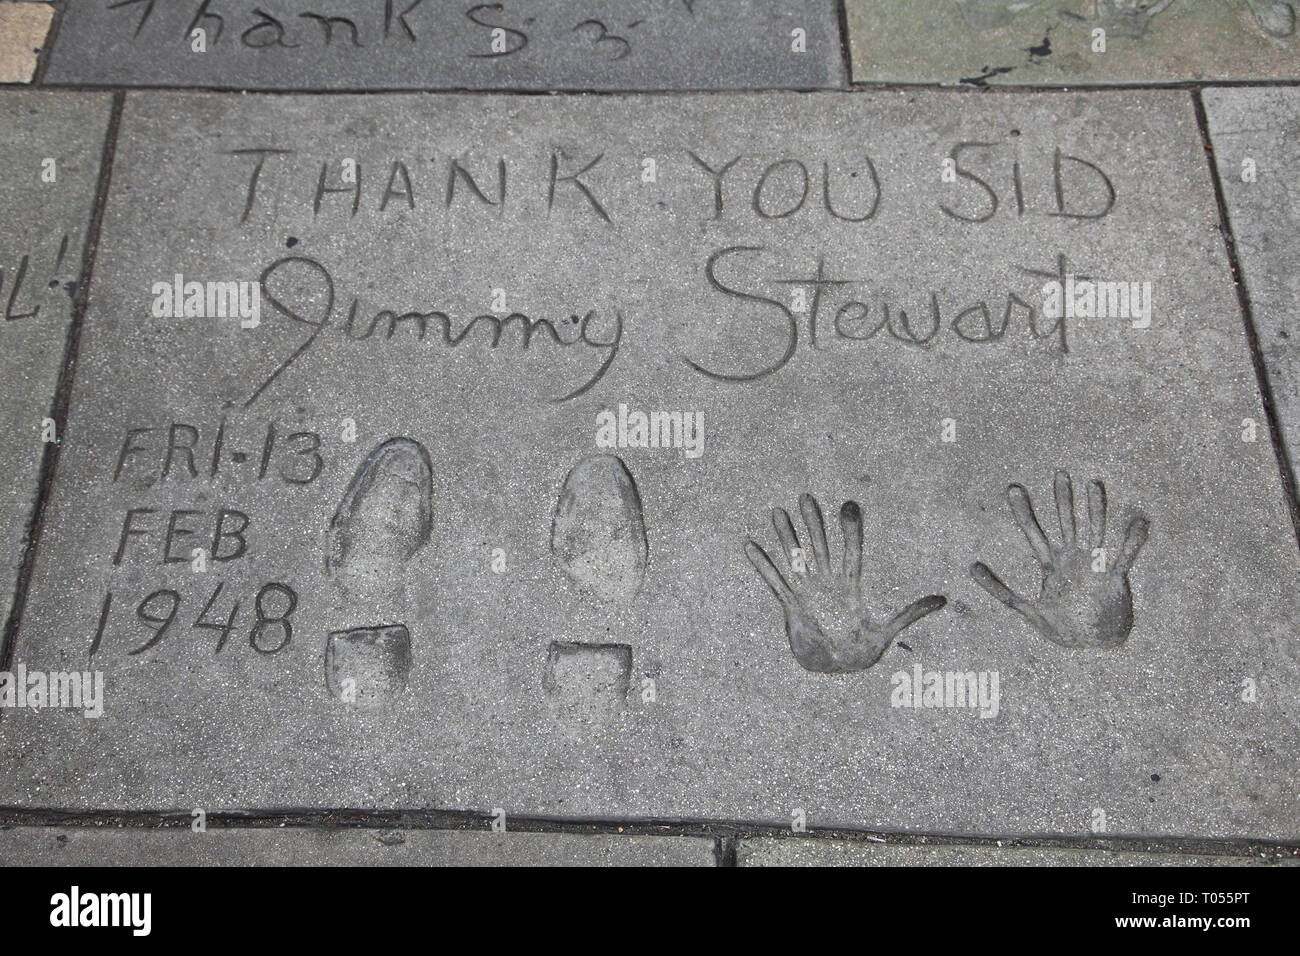 Jimmy Stewart, Hand, Foot Prints, Manns (Graumans) Chinese movie Theatre, Hollywood Boulevard, Los Angeles, California, USA - Stock Image